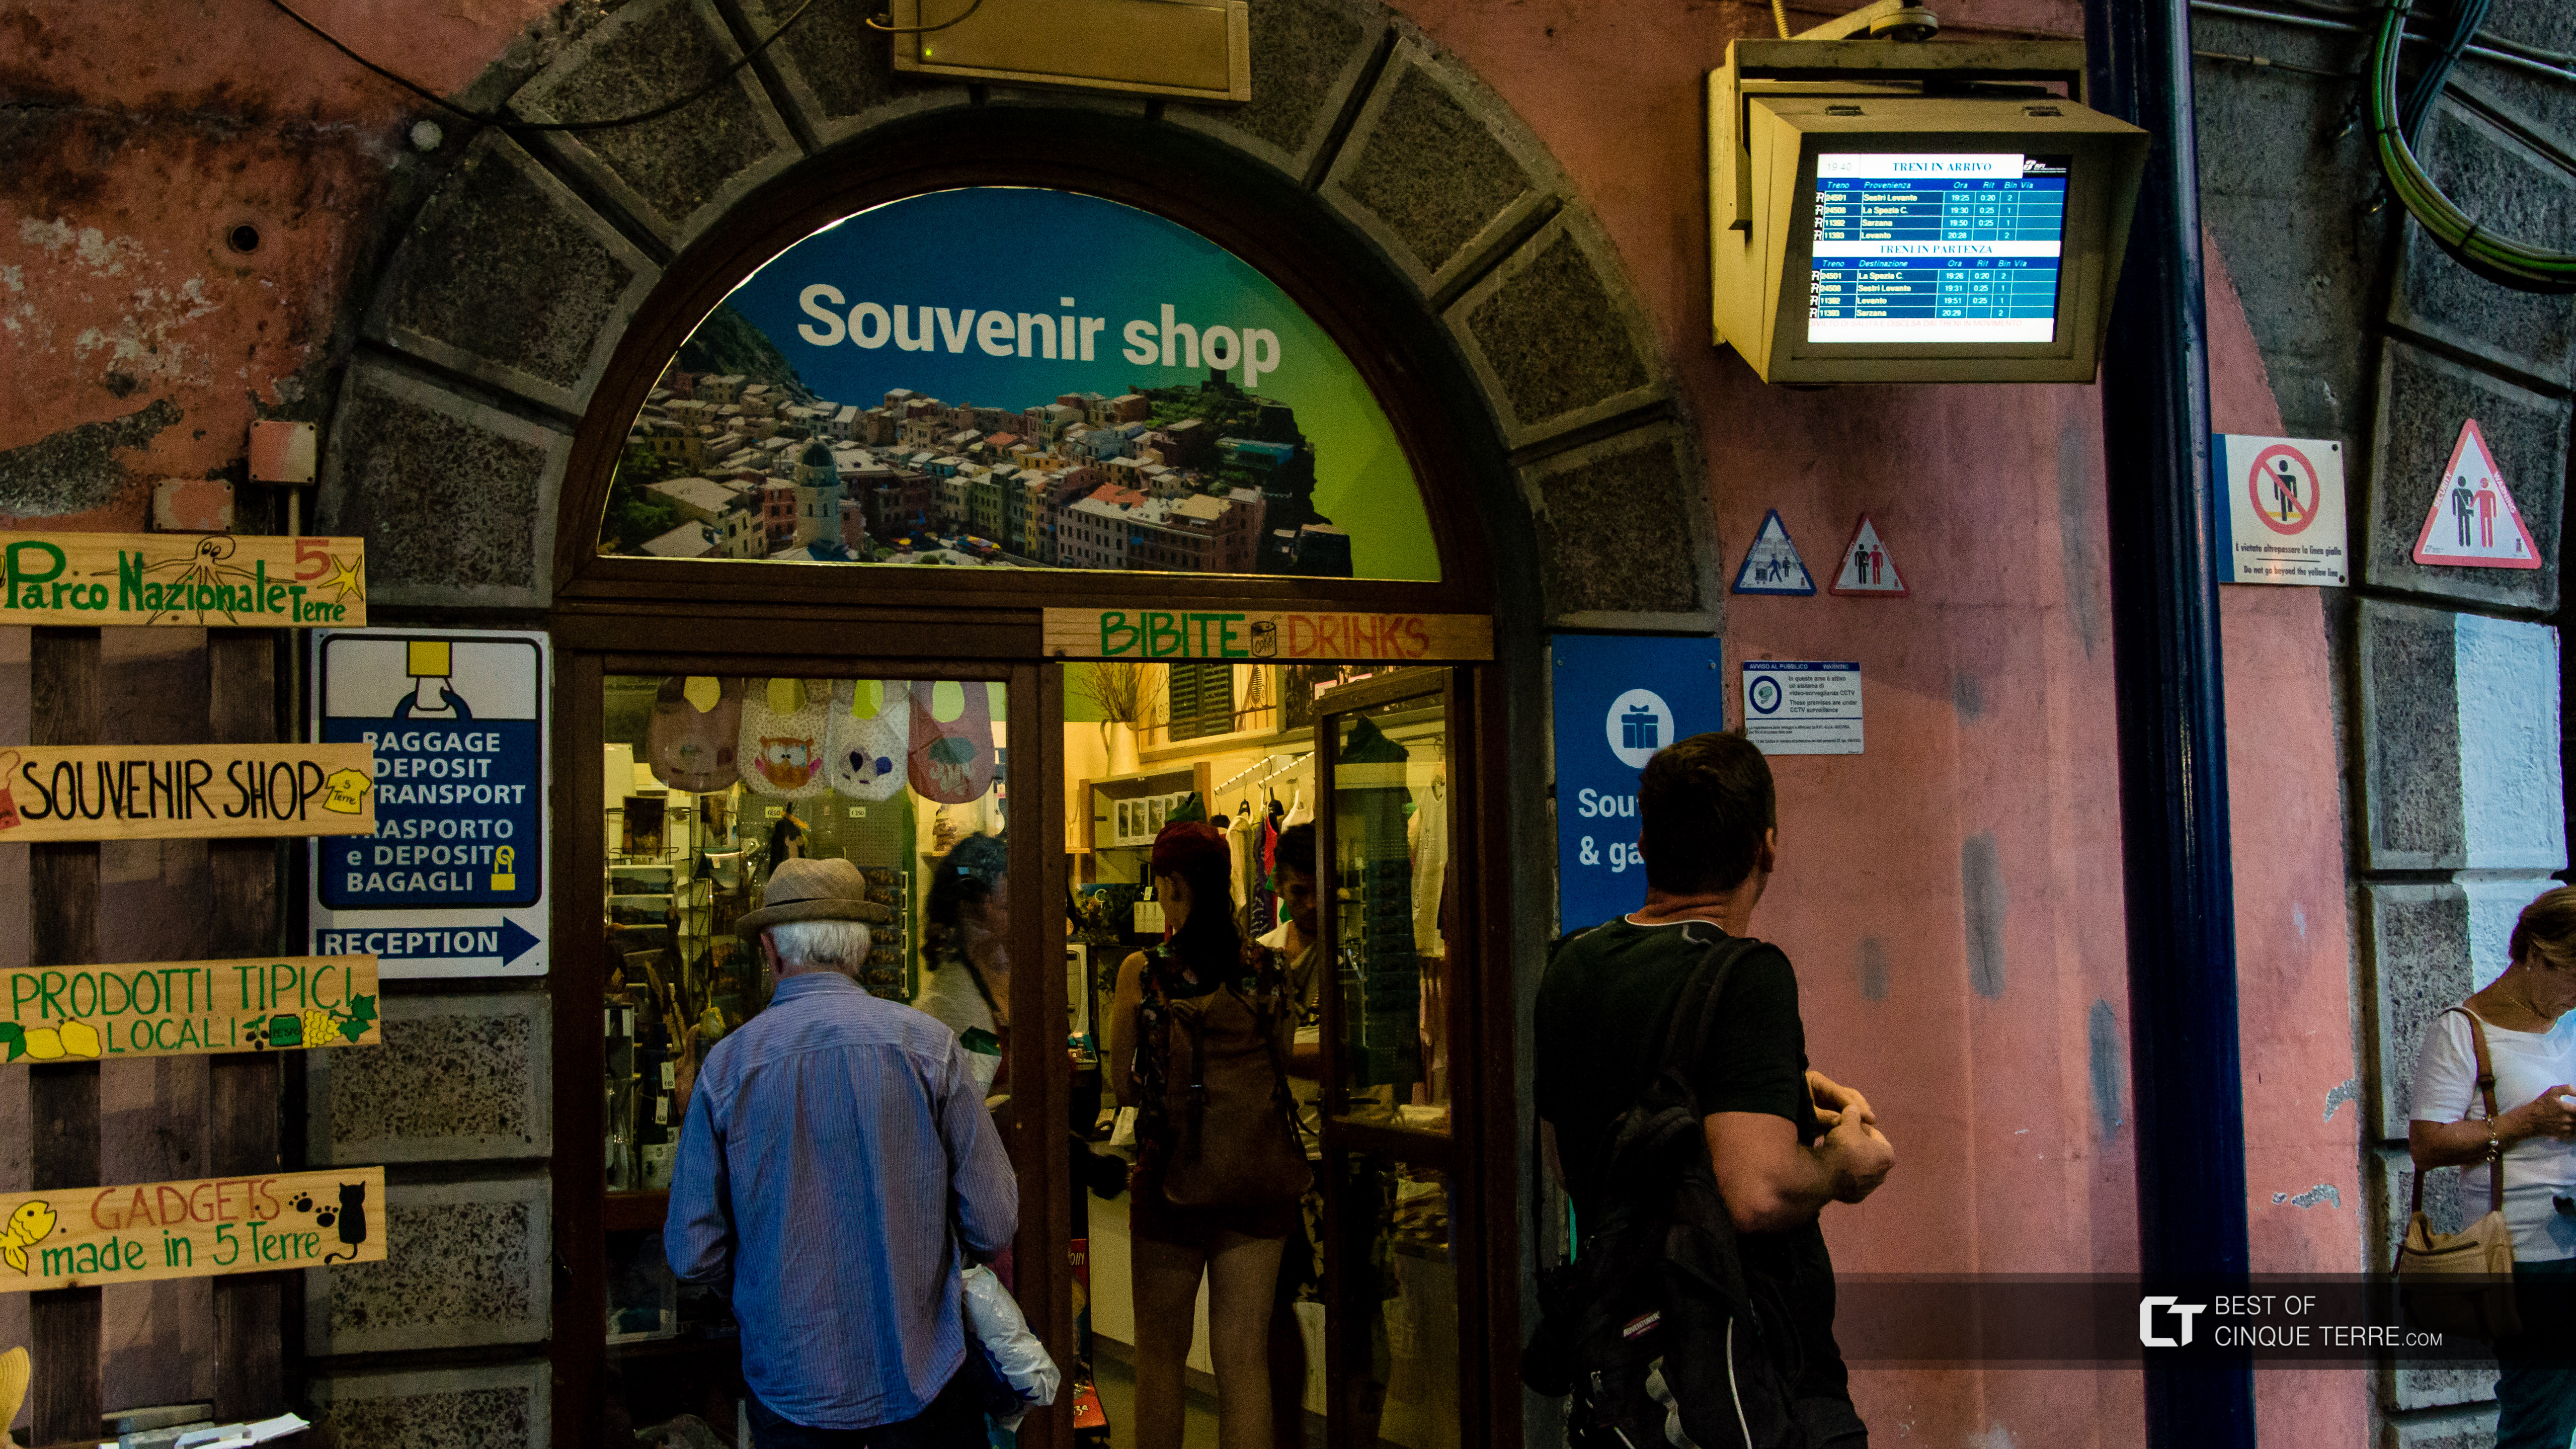 The tourist office at the train station, Vernazza, Cinque Terre, Italy